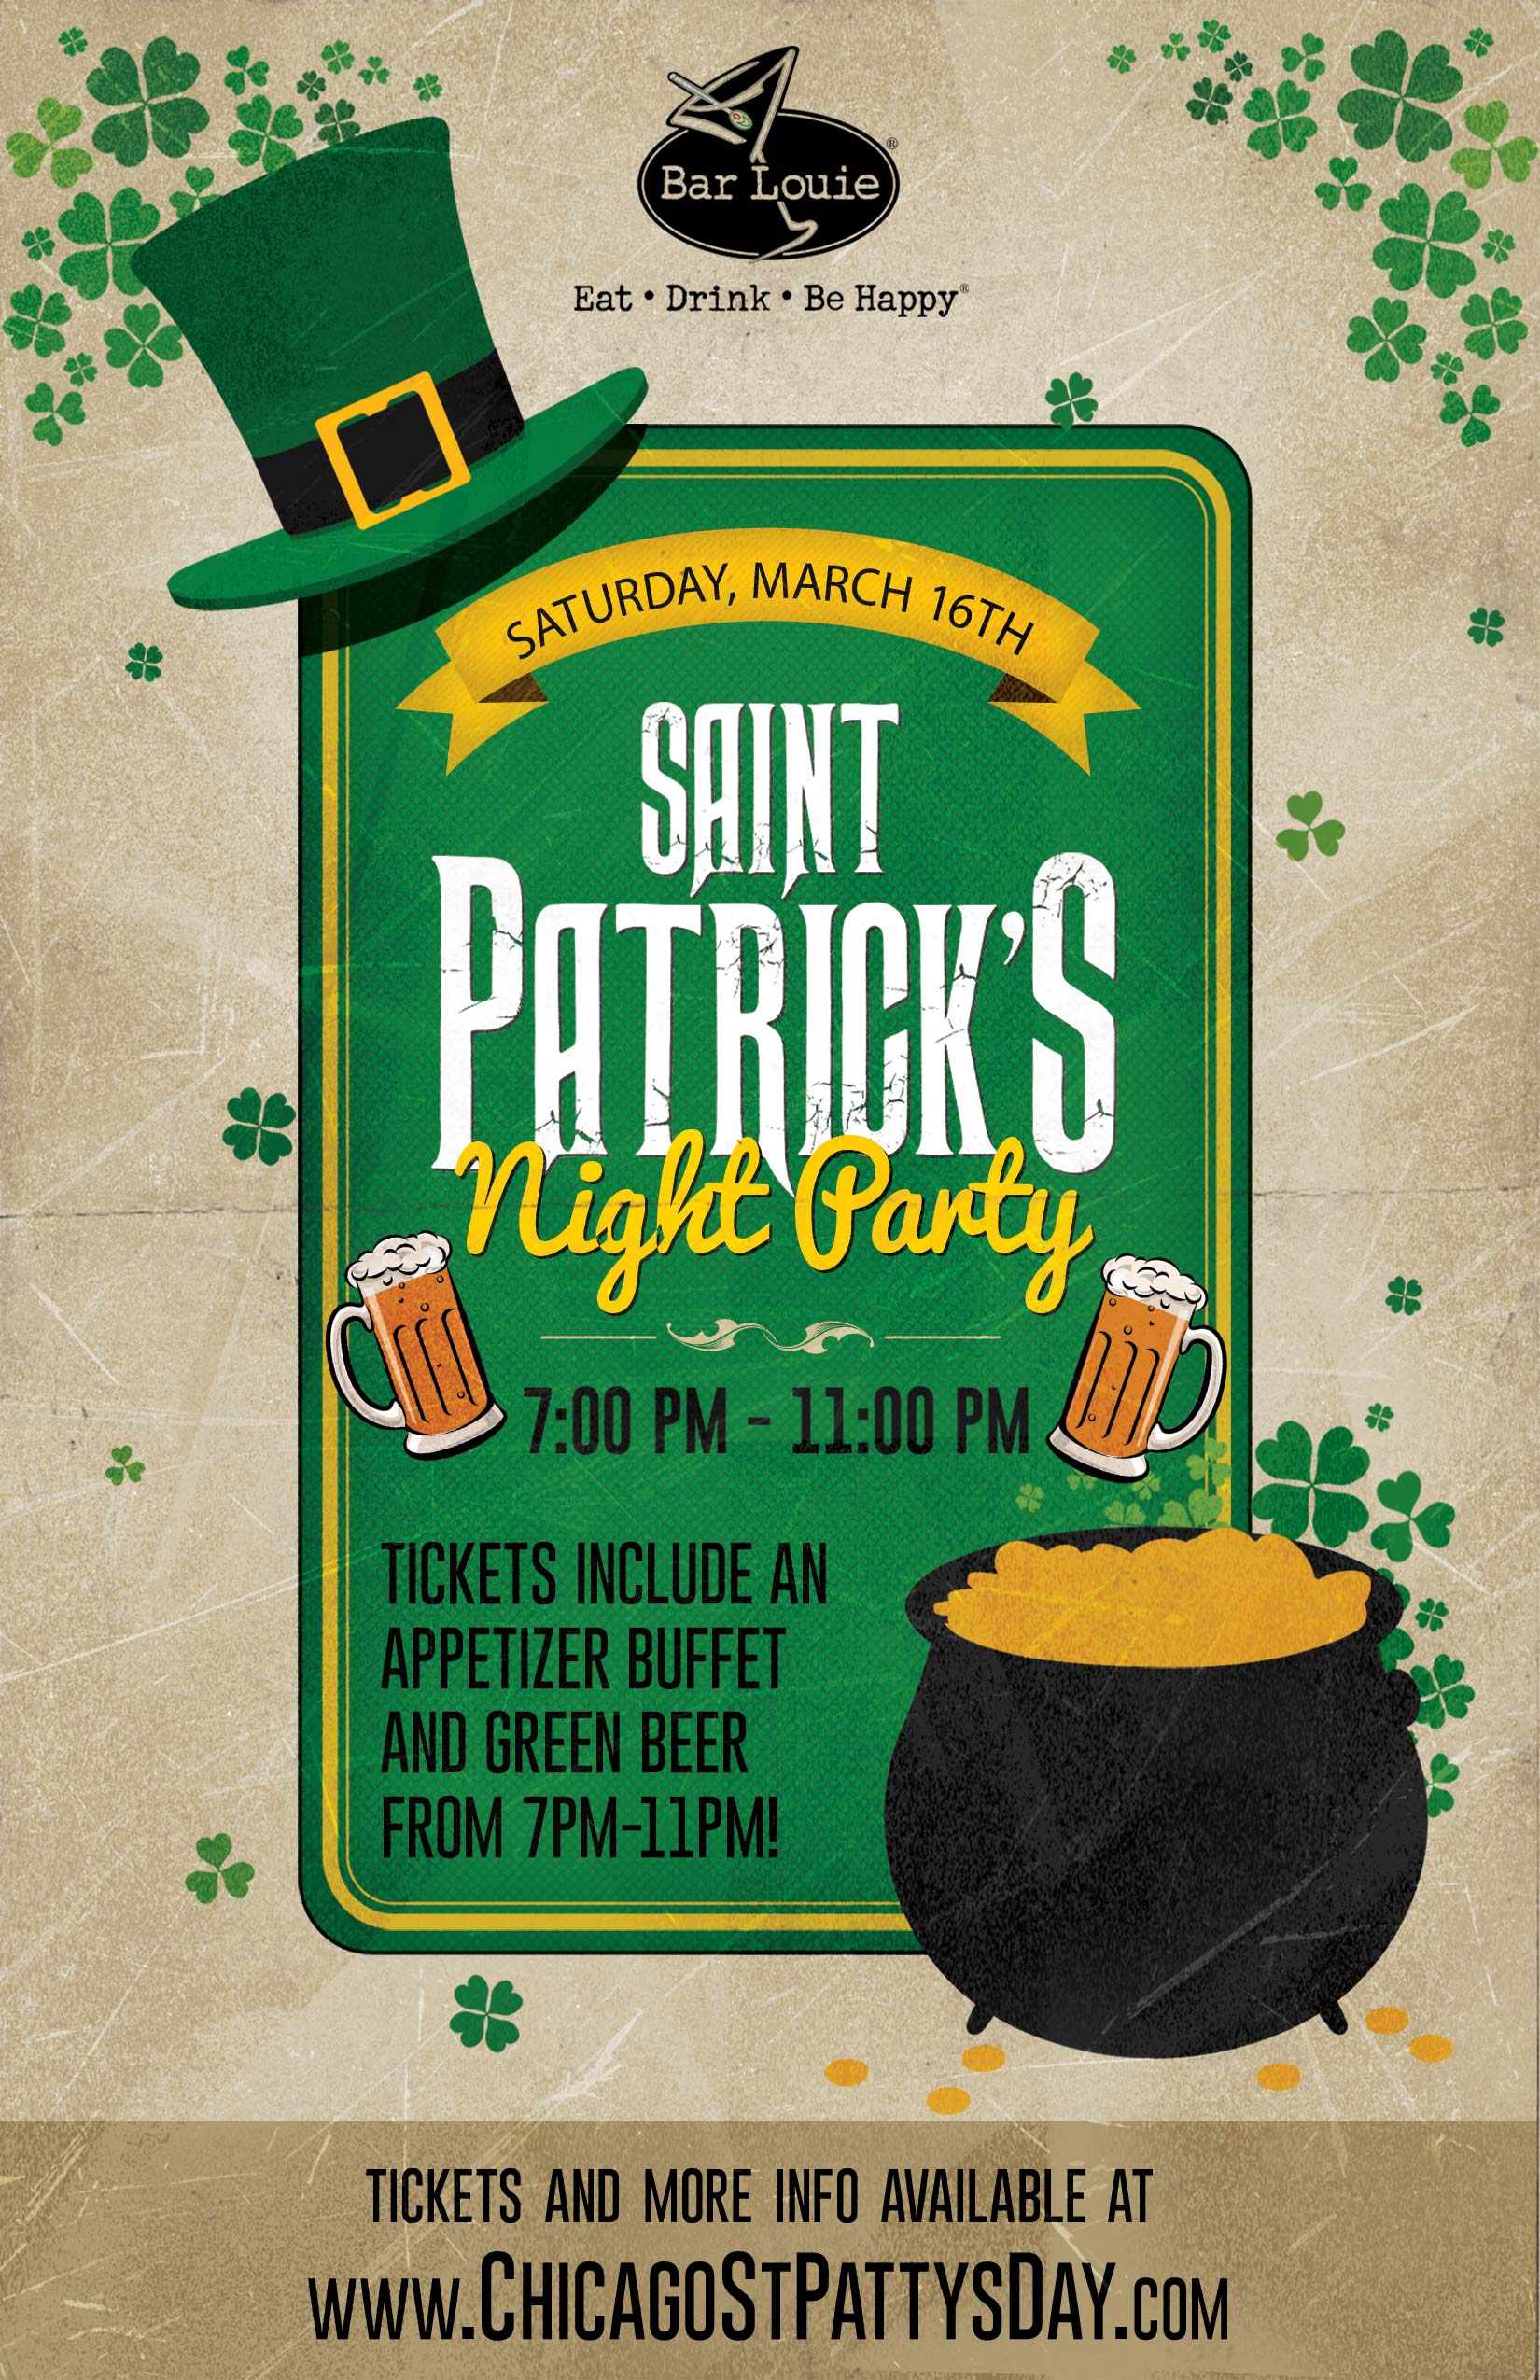 St. Patrick's Day Night Party at Bar Louie - Tickets include An Appetizer Buffet And Green Beer From 7pm-11pm!